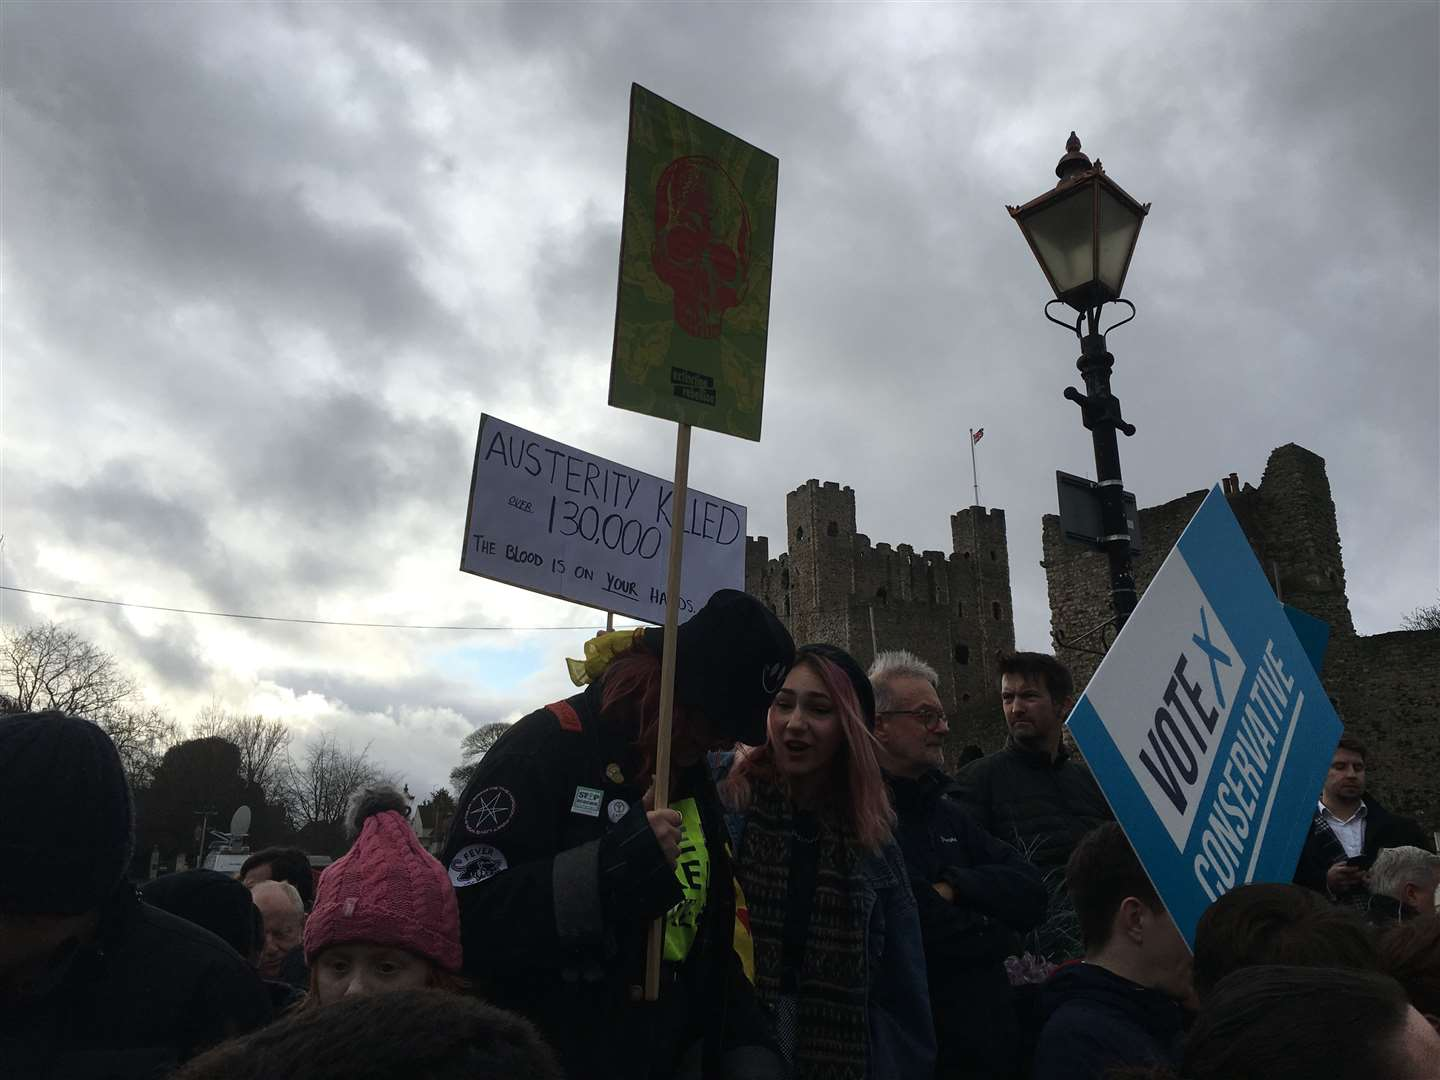 Opponents were among the crowds with Conservative campaigners